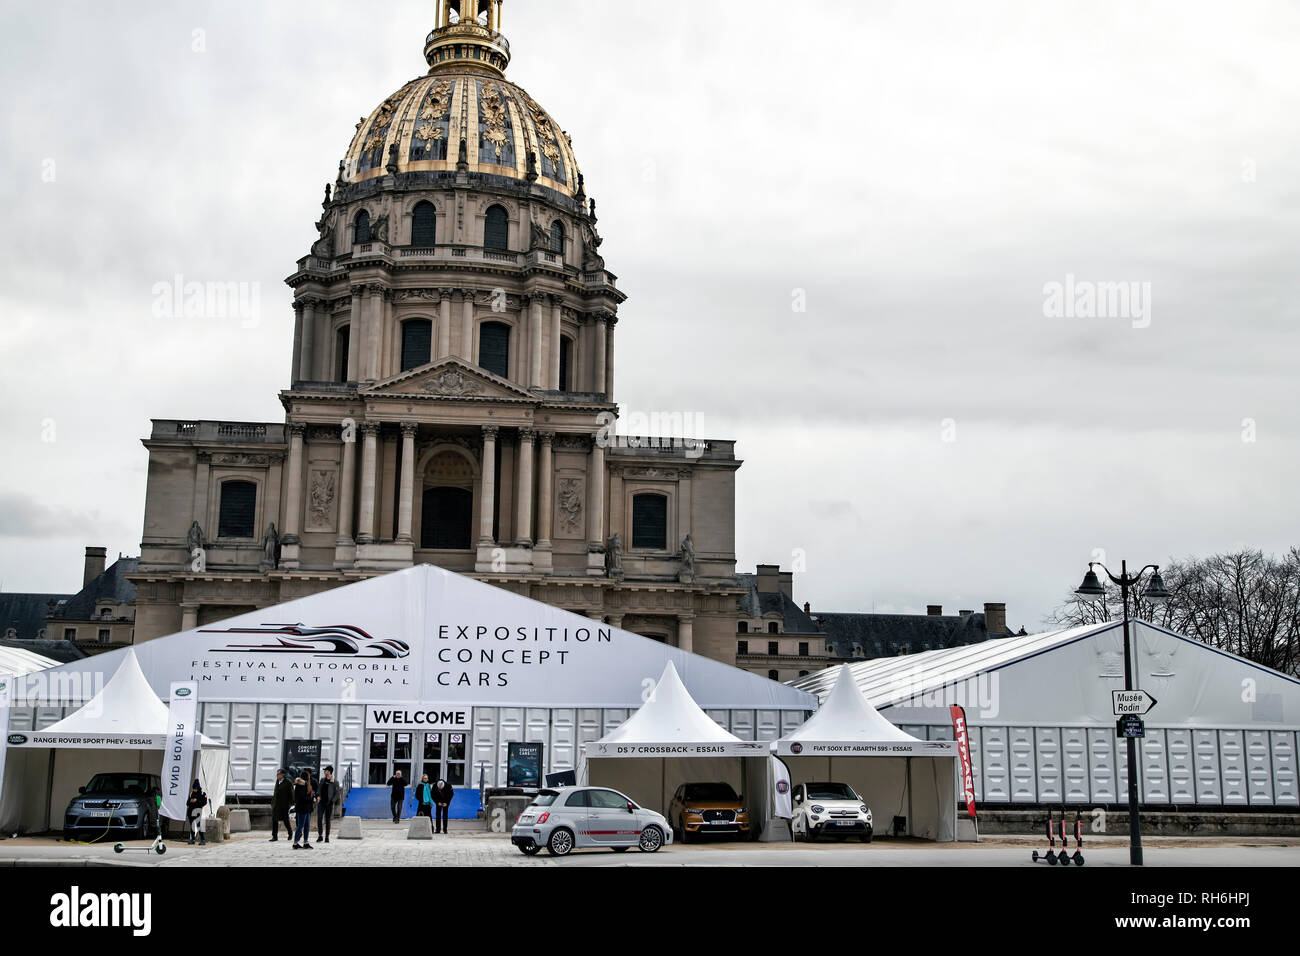 Paris, France. 31st Jan, 2019. The International Automobile Festival brings together in Paris the most beautiful concept cars made by car manufacturers, from January 30th to February 31st, 2019. Credit: Bernard Menigault/Alamy Live News Stock Photo